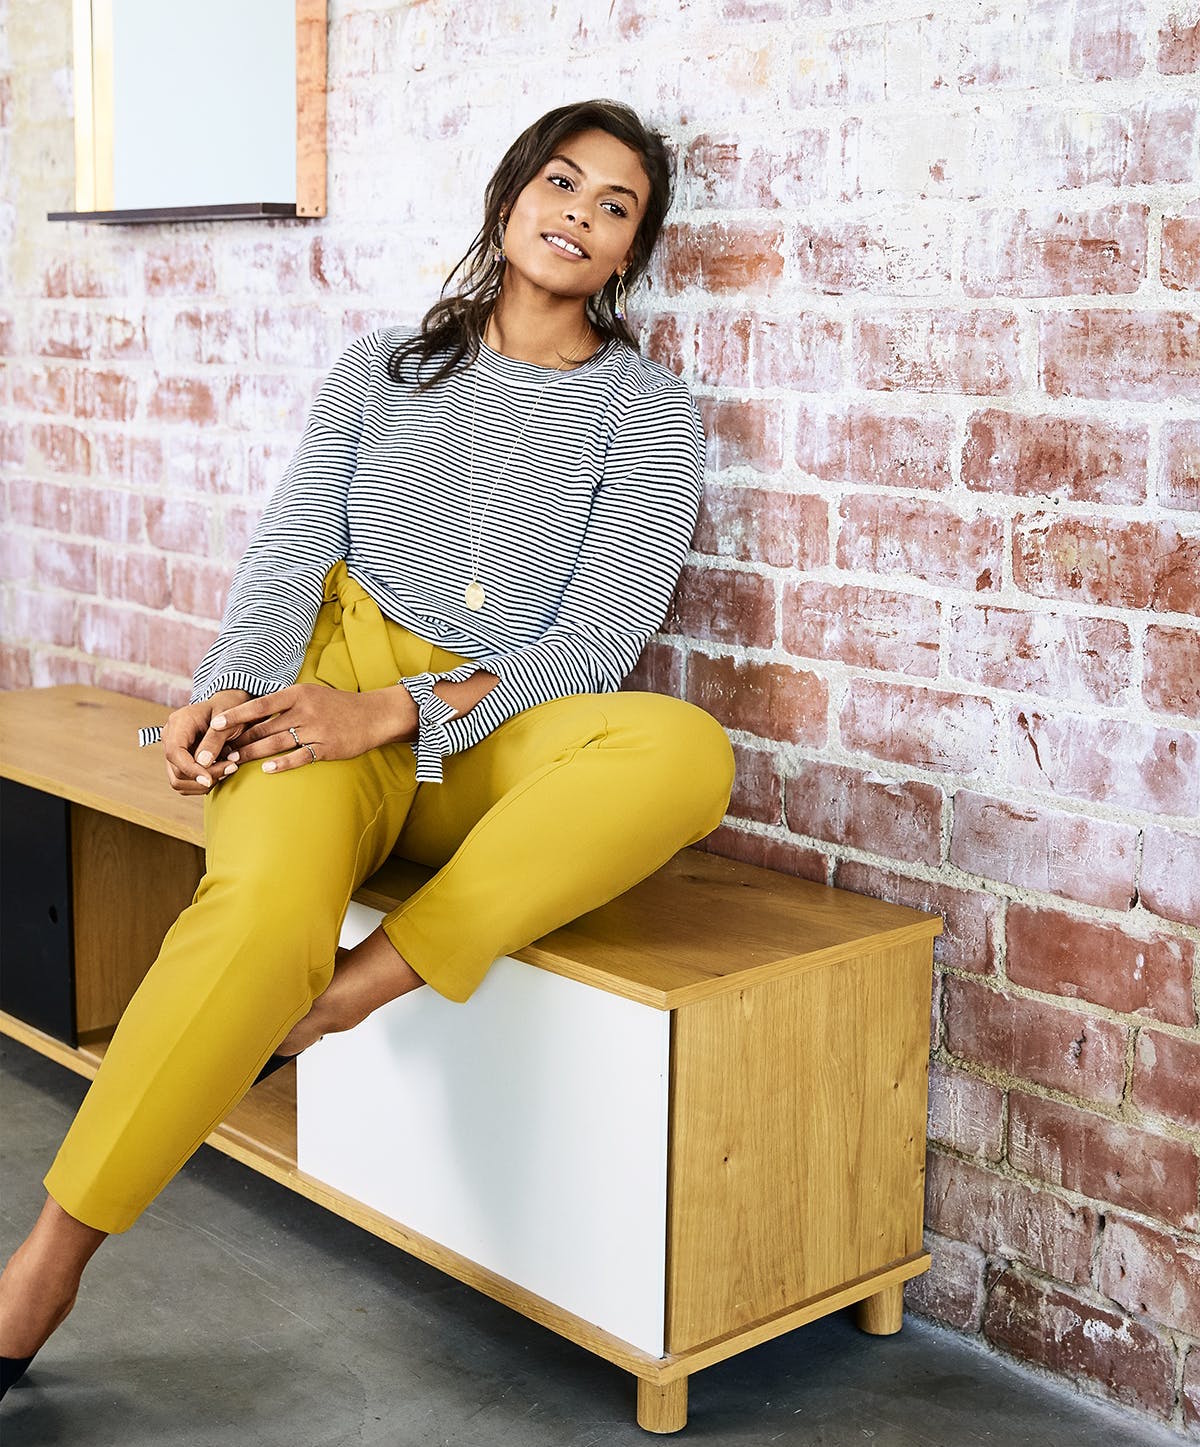 A model in yellow pants and a striped top leaning against a brick wall